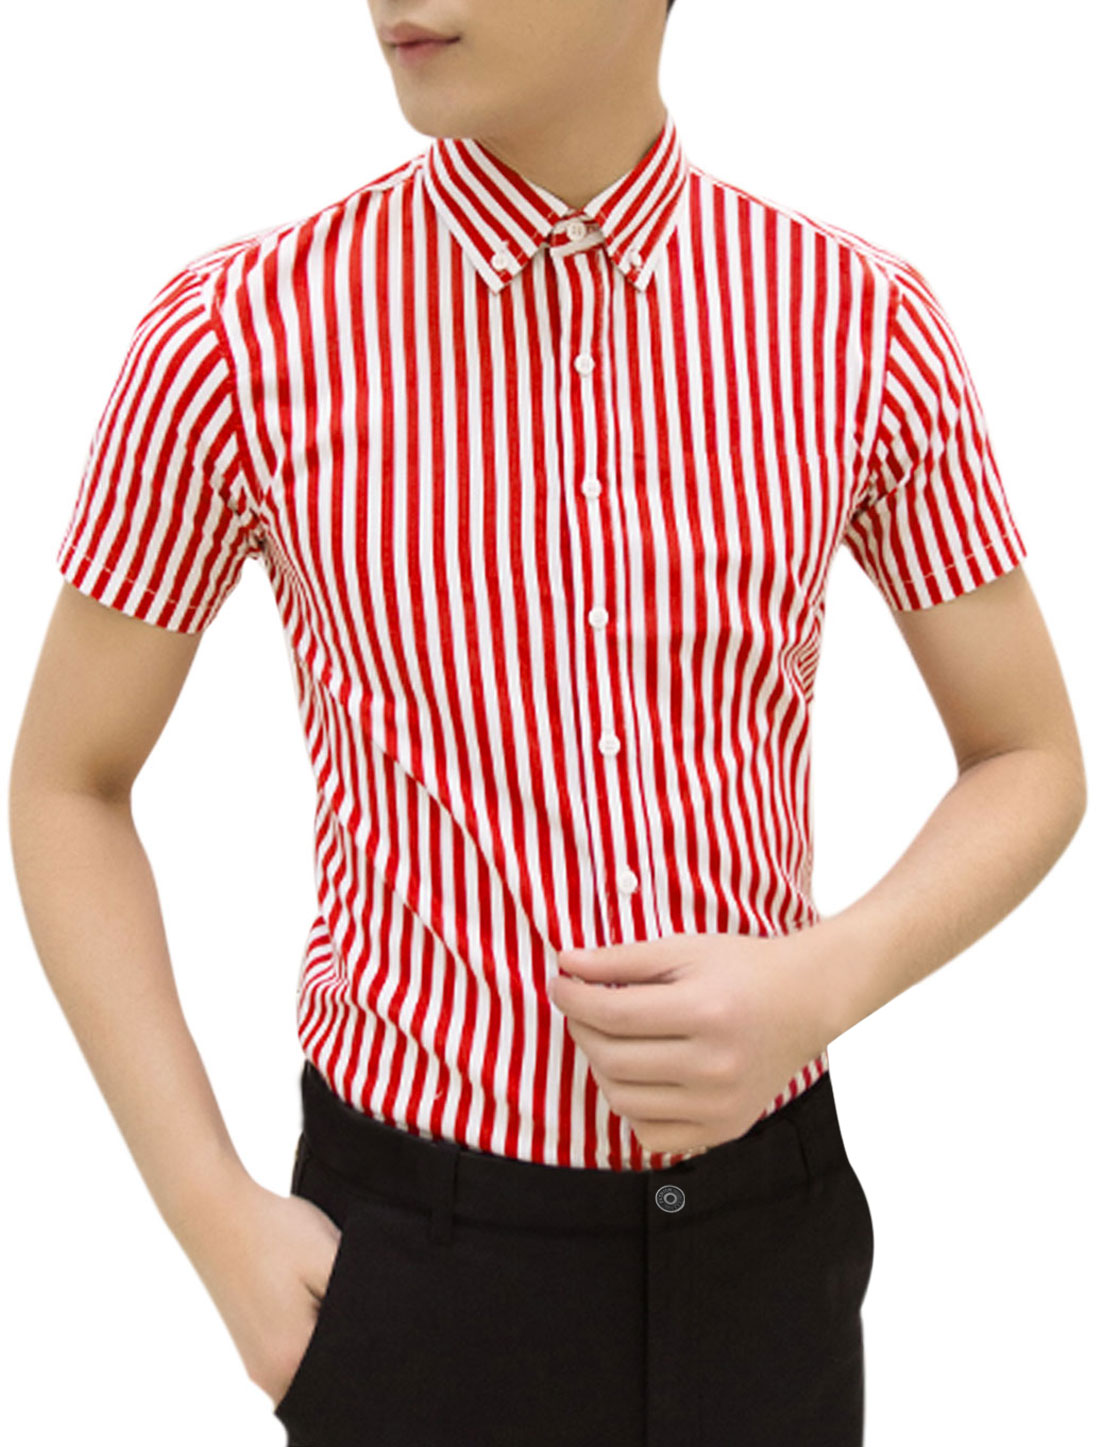 Men Point Collar Short Sleeves Bar Striped Button Down Shirts Red White M